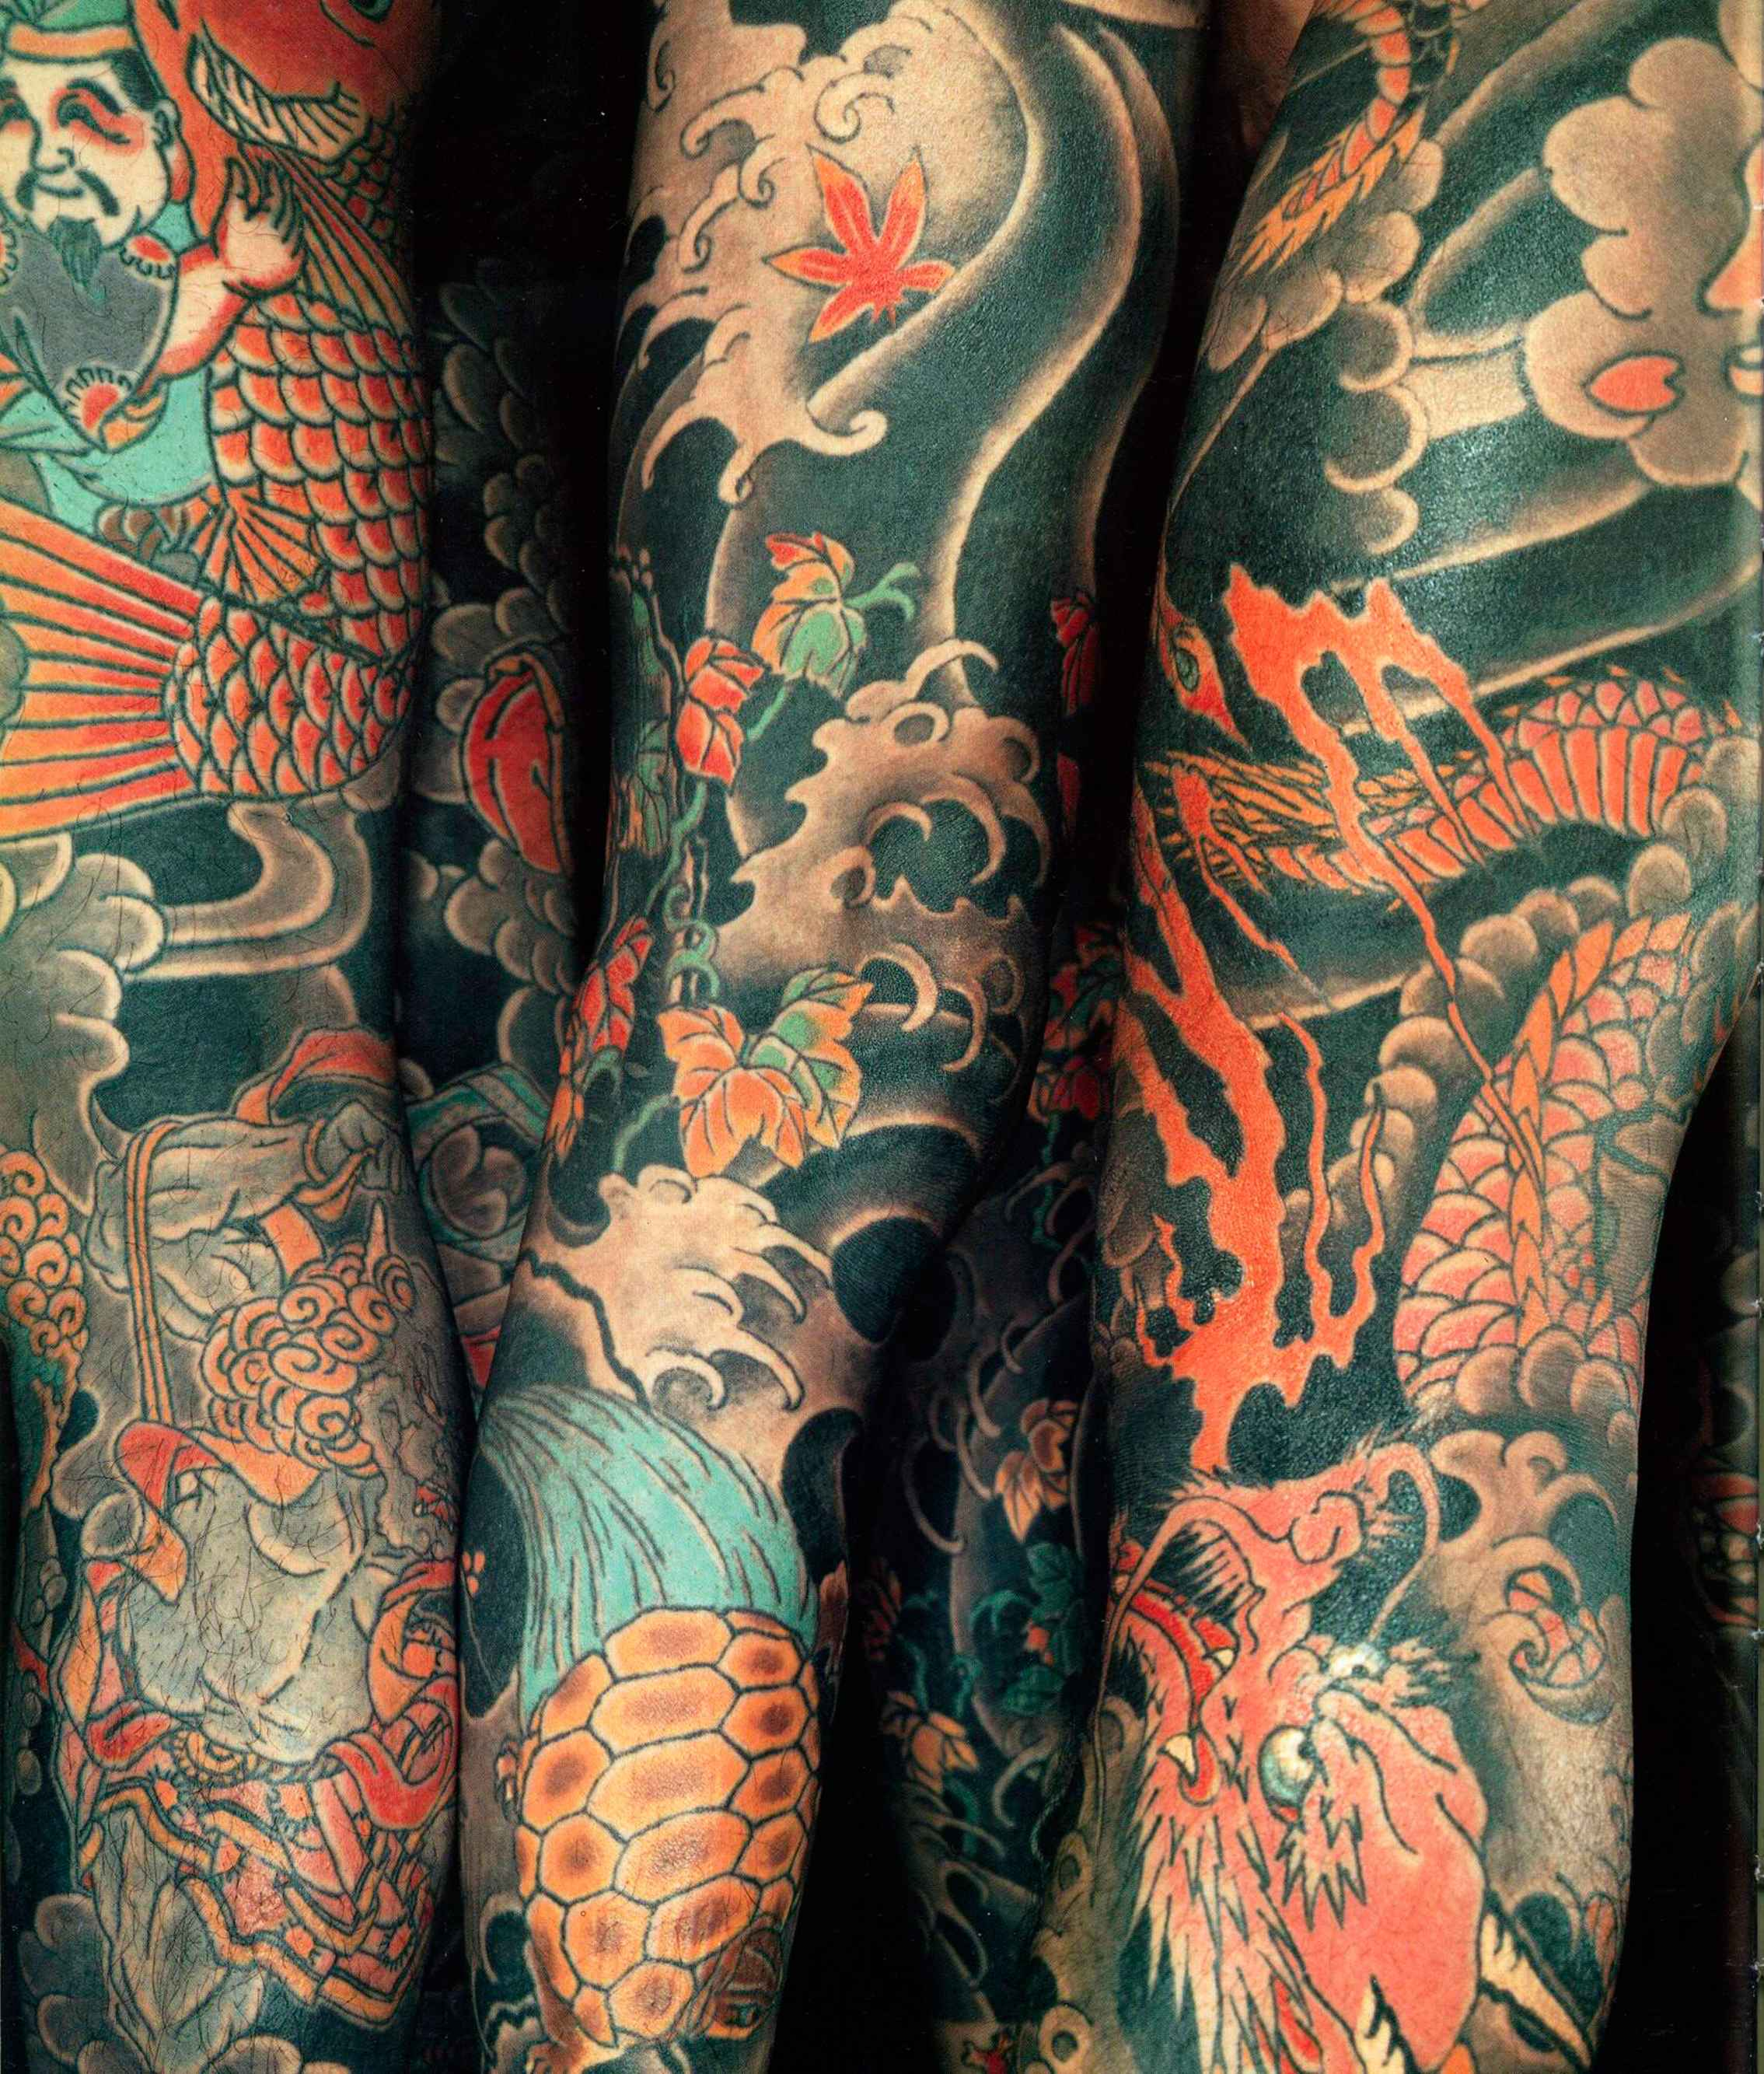 Japanese Waves And Clouds Tattoo